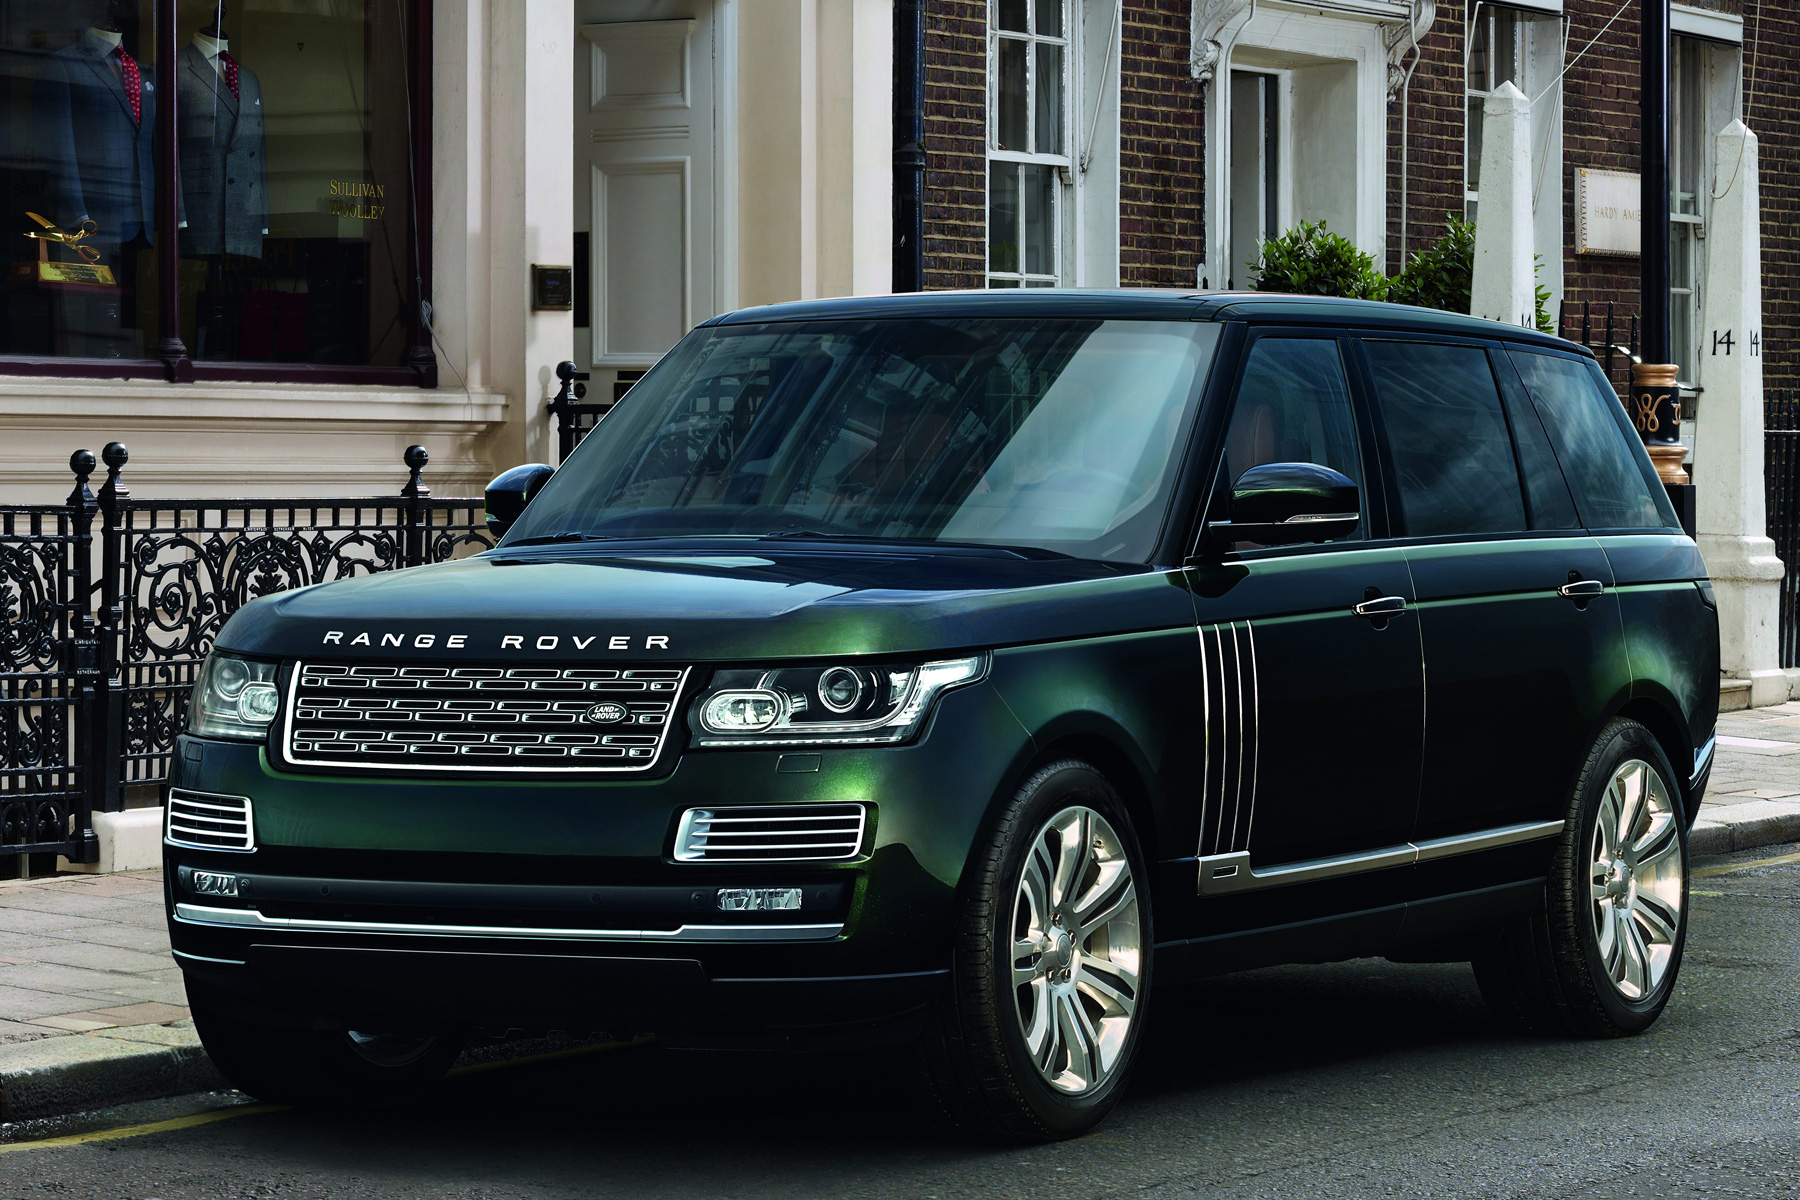 A new Range Rover Holland and Holland